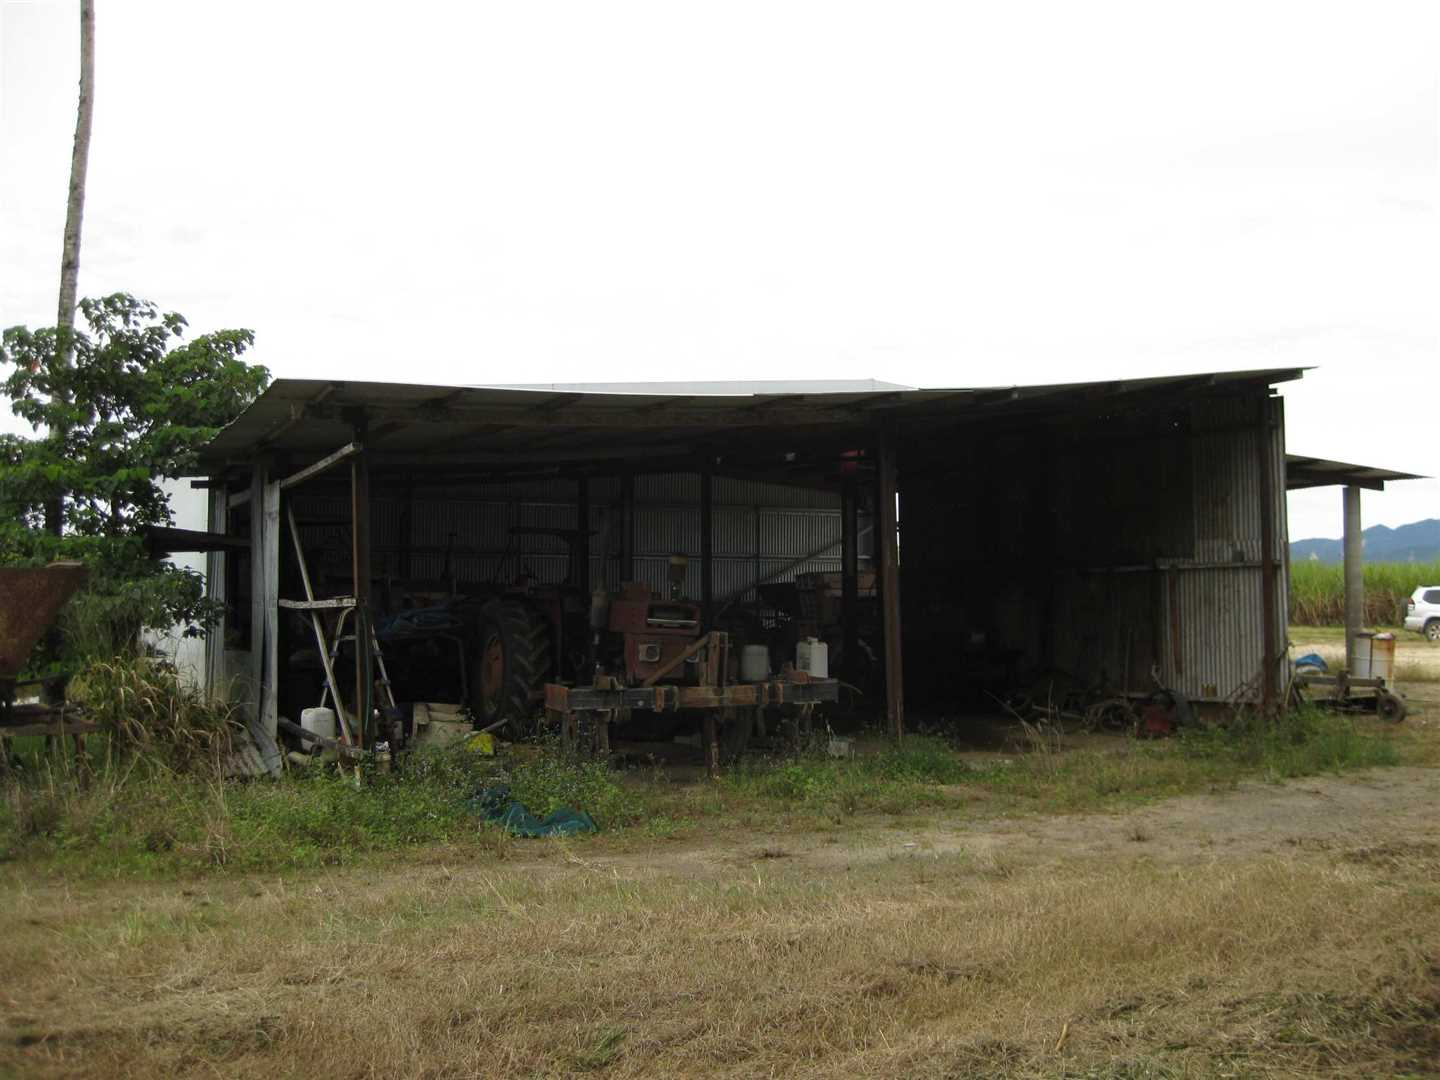 View of part of sheds, photo 3